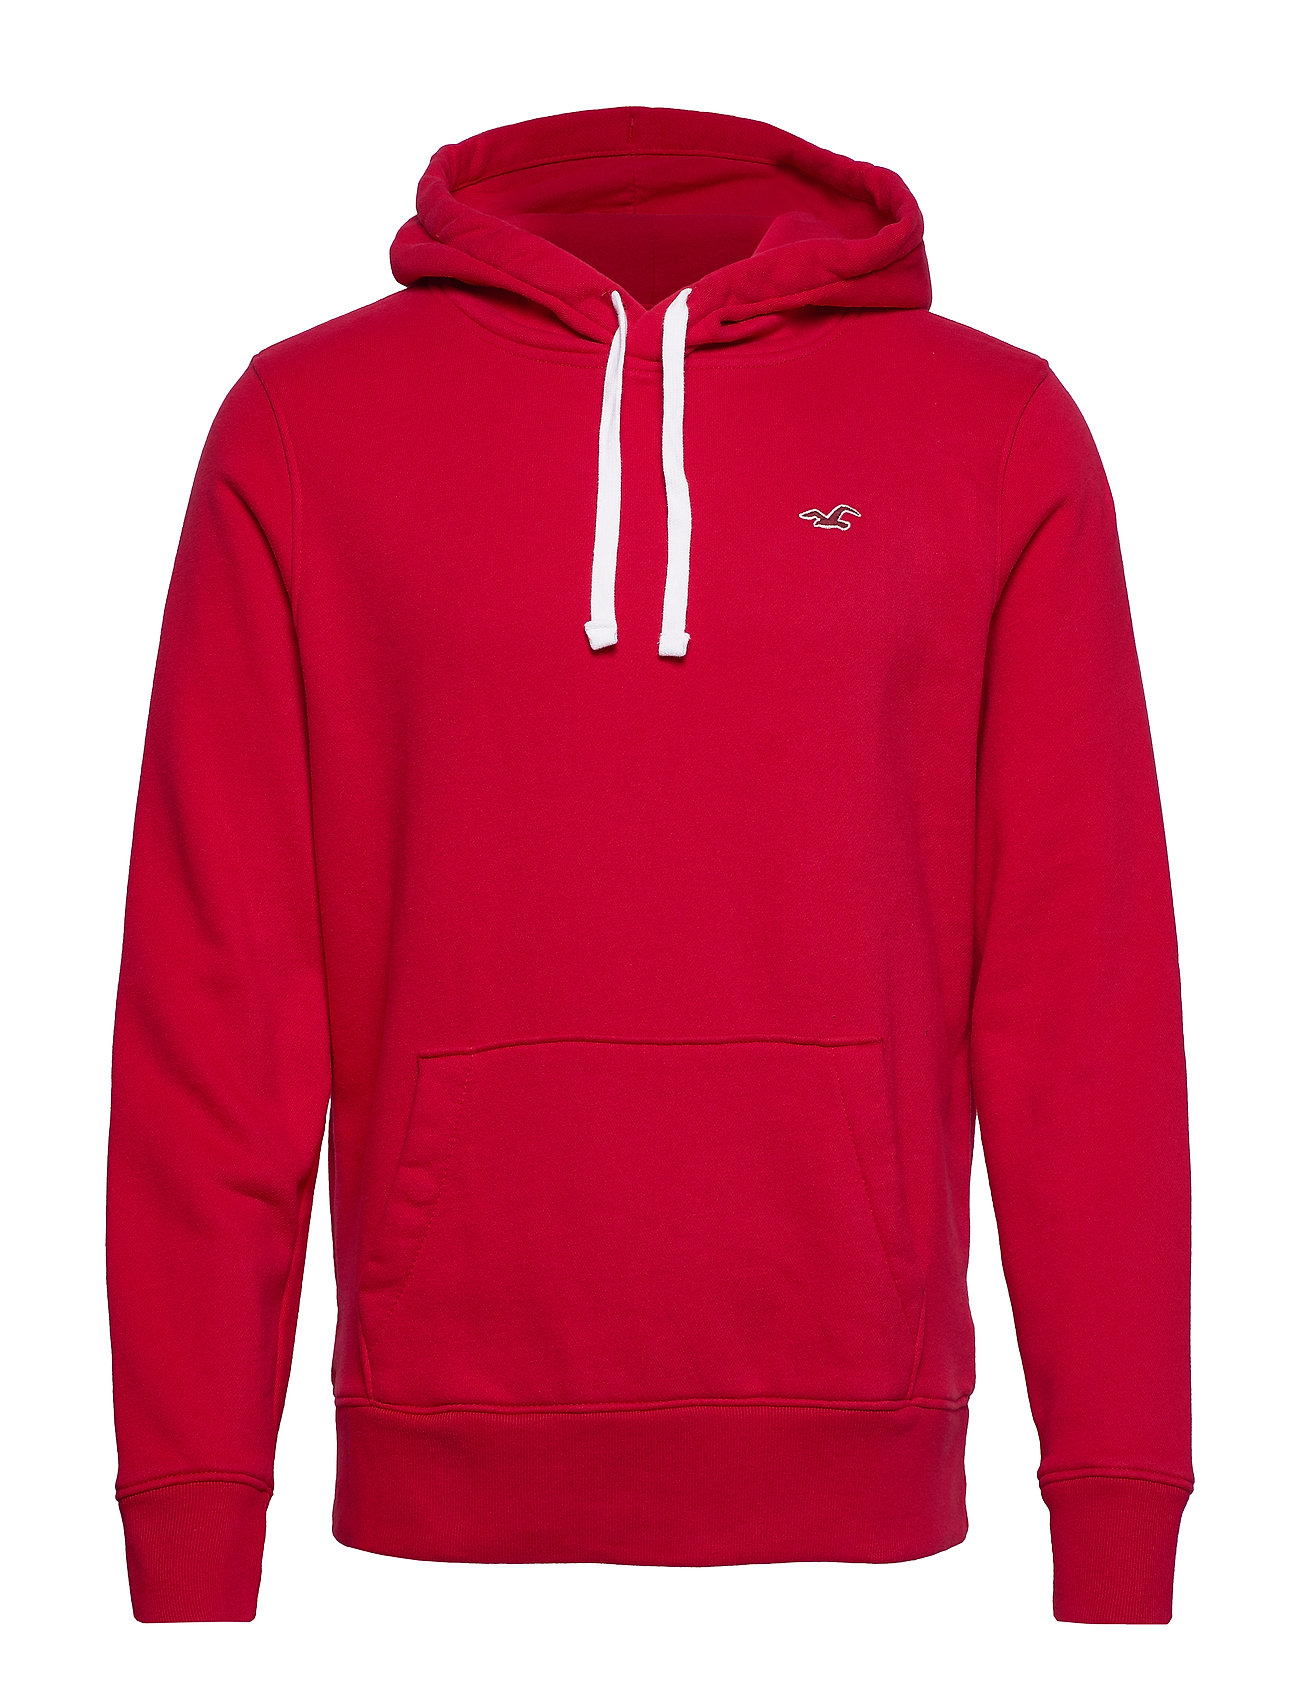 Hollister Pull Over Sweatshirt - RED DD